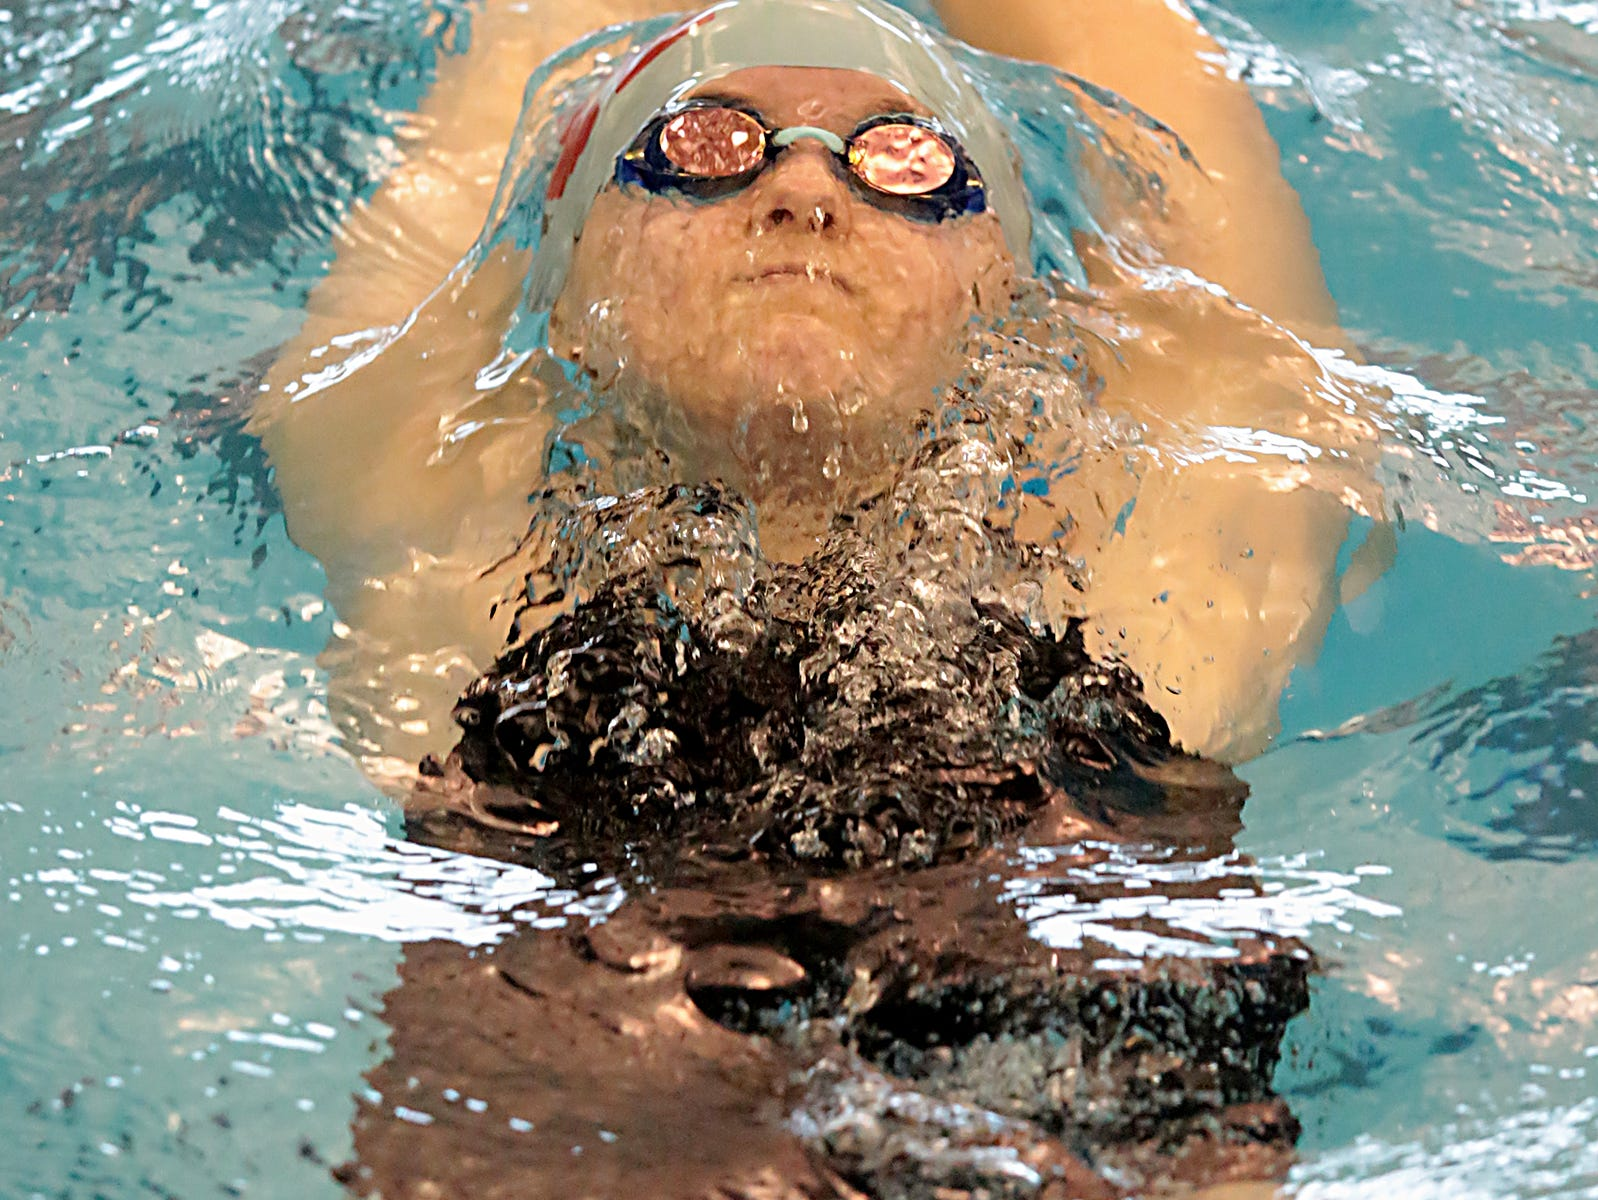 Alicia Barnett, from Kings, competes in the 200-yard IM during the Division I and II sectionals at Mason High School Saturday, Feb. 9, 2019.